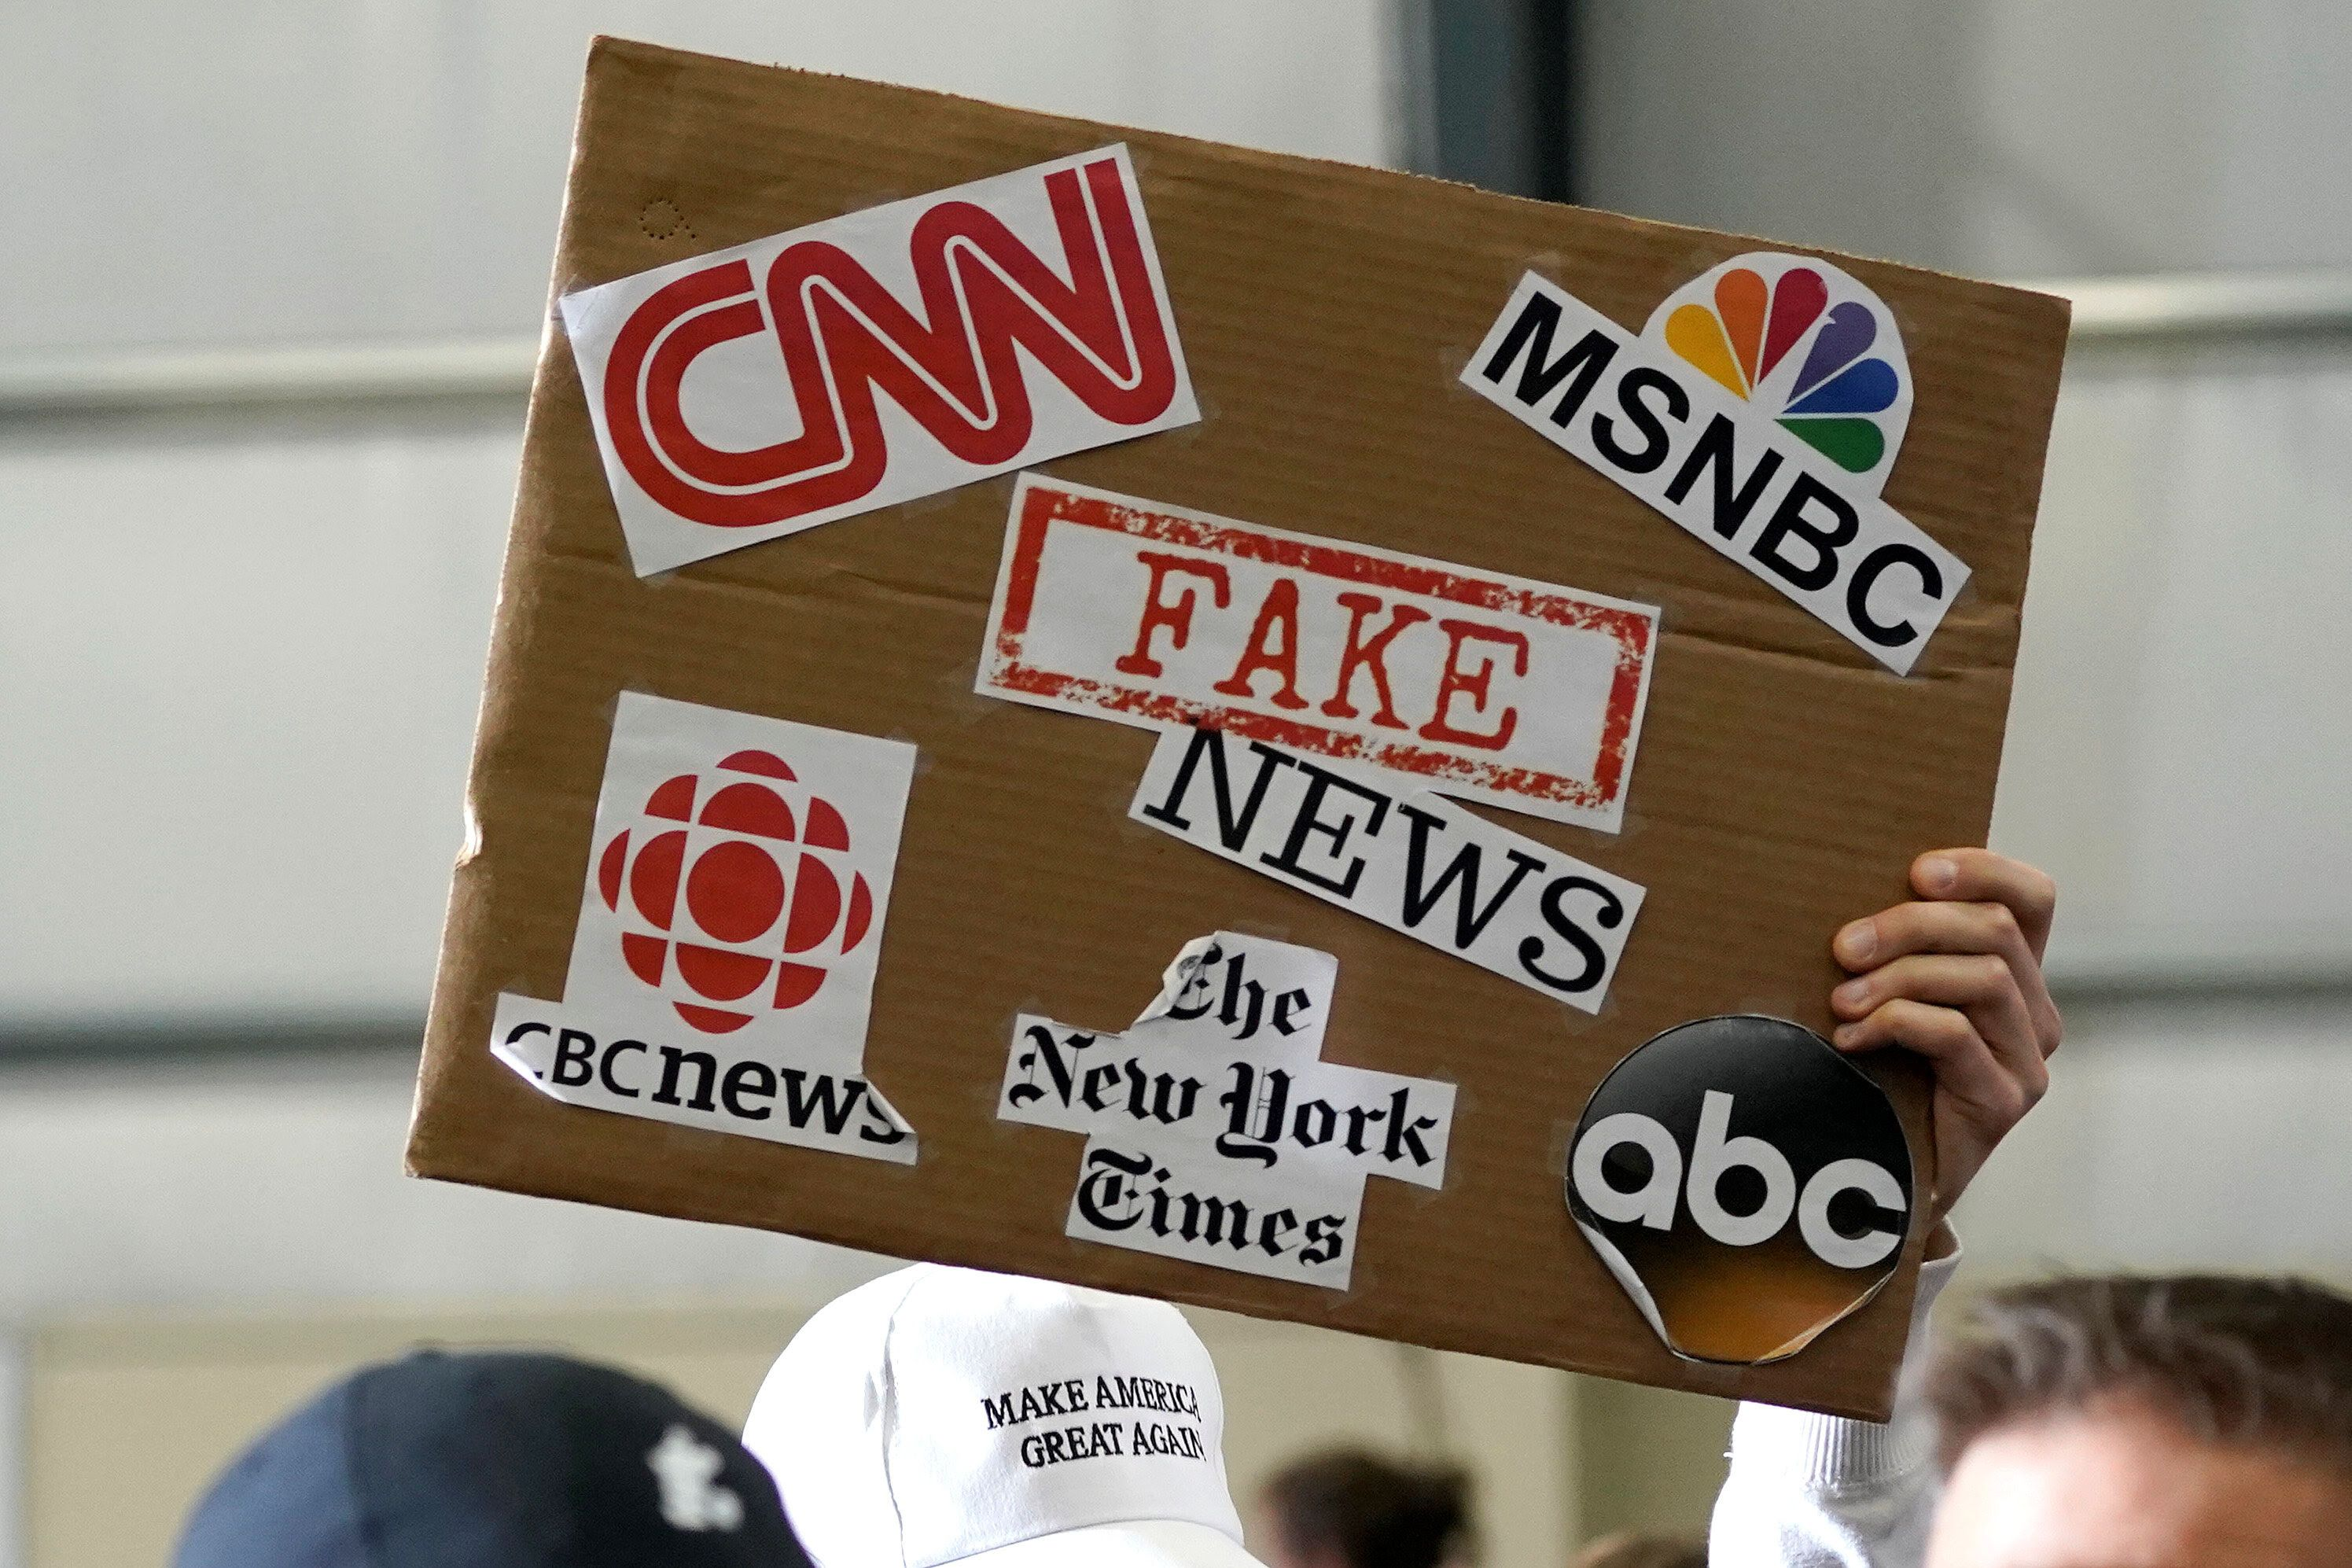 Fake News: More Spam Than Cyber?